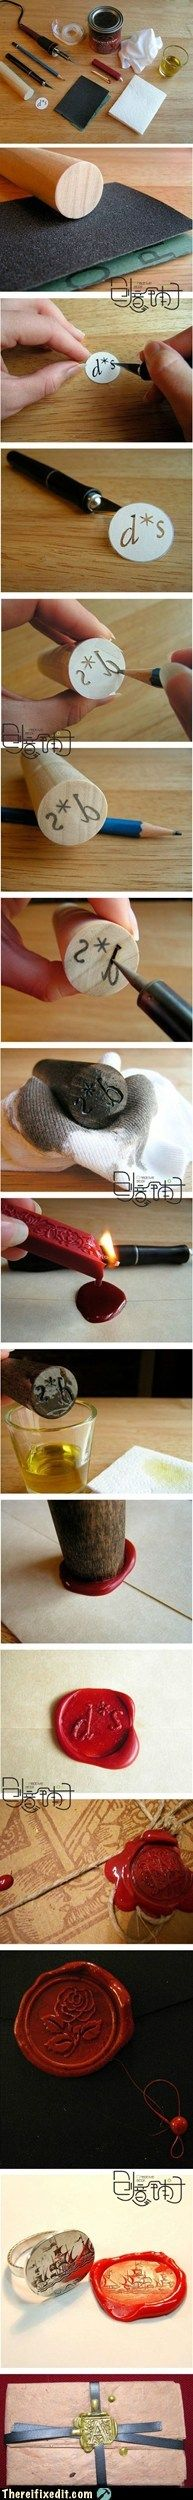 Make your own wax stamp